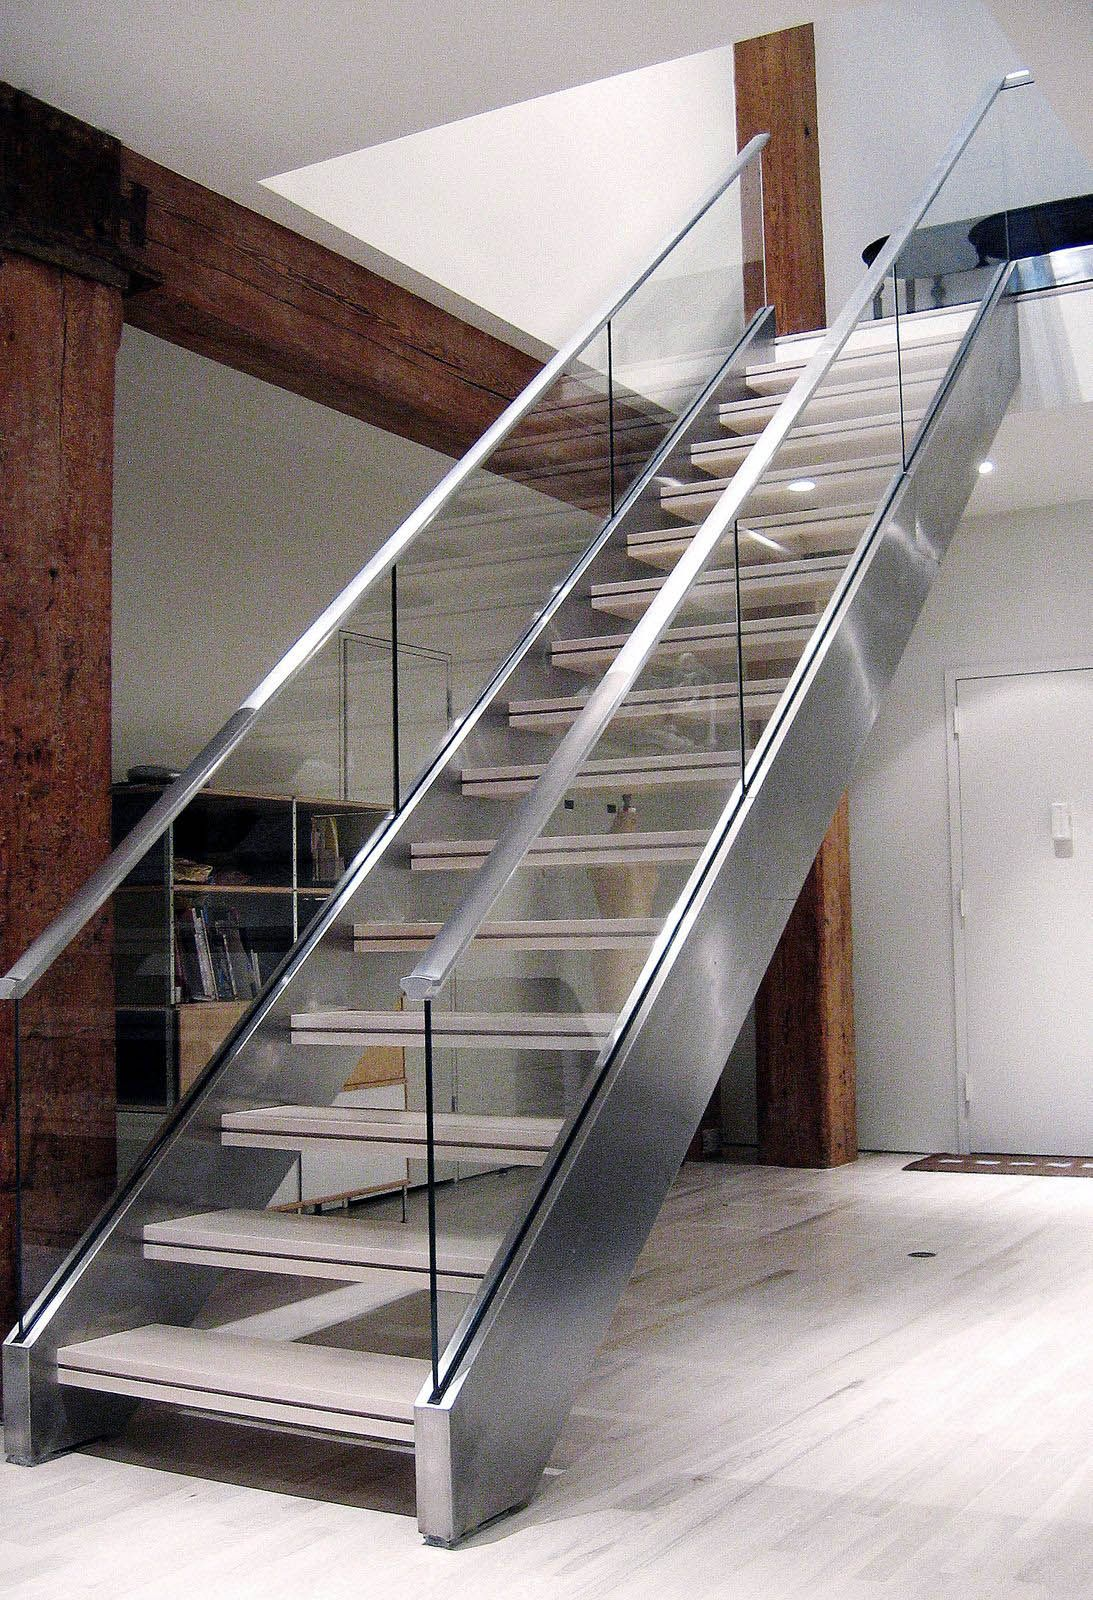 20 Sleek Glass Railings For The Stairs Glass Railing   Stairs Railing Designs In Steel And Glass